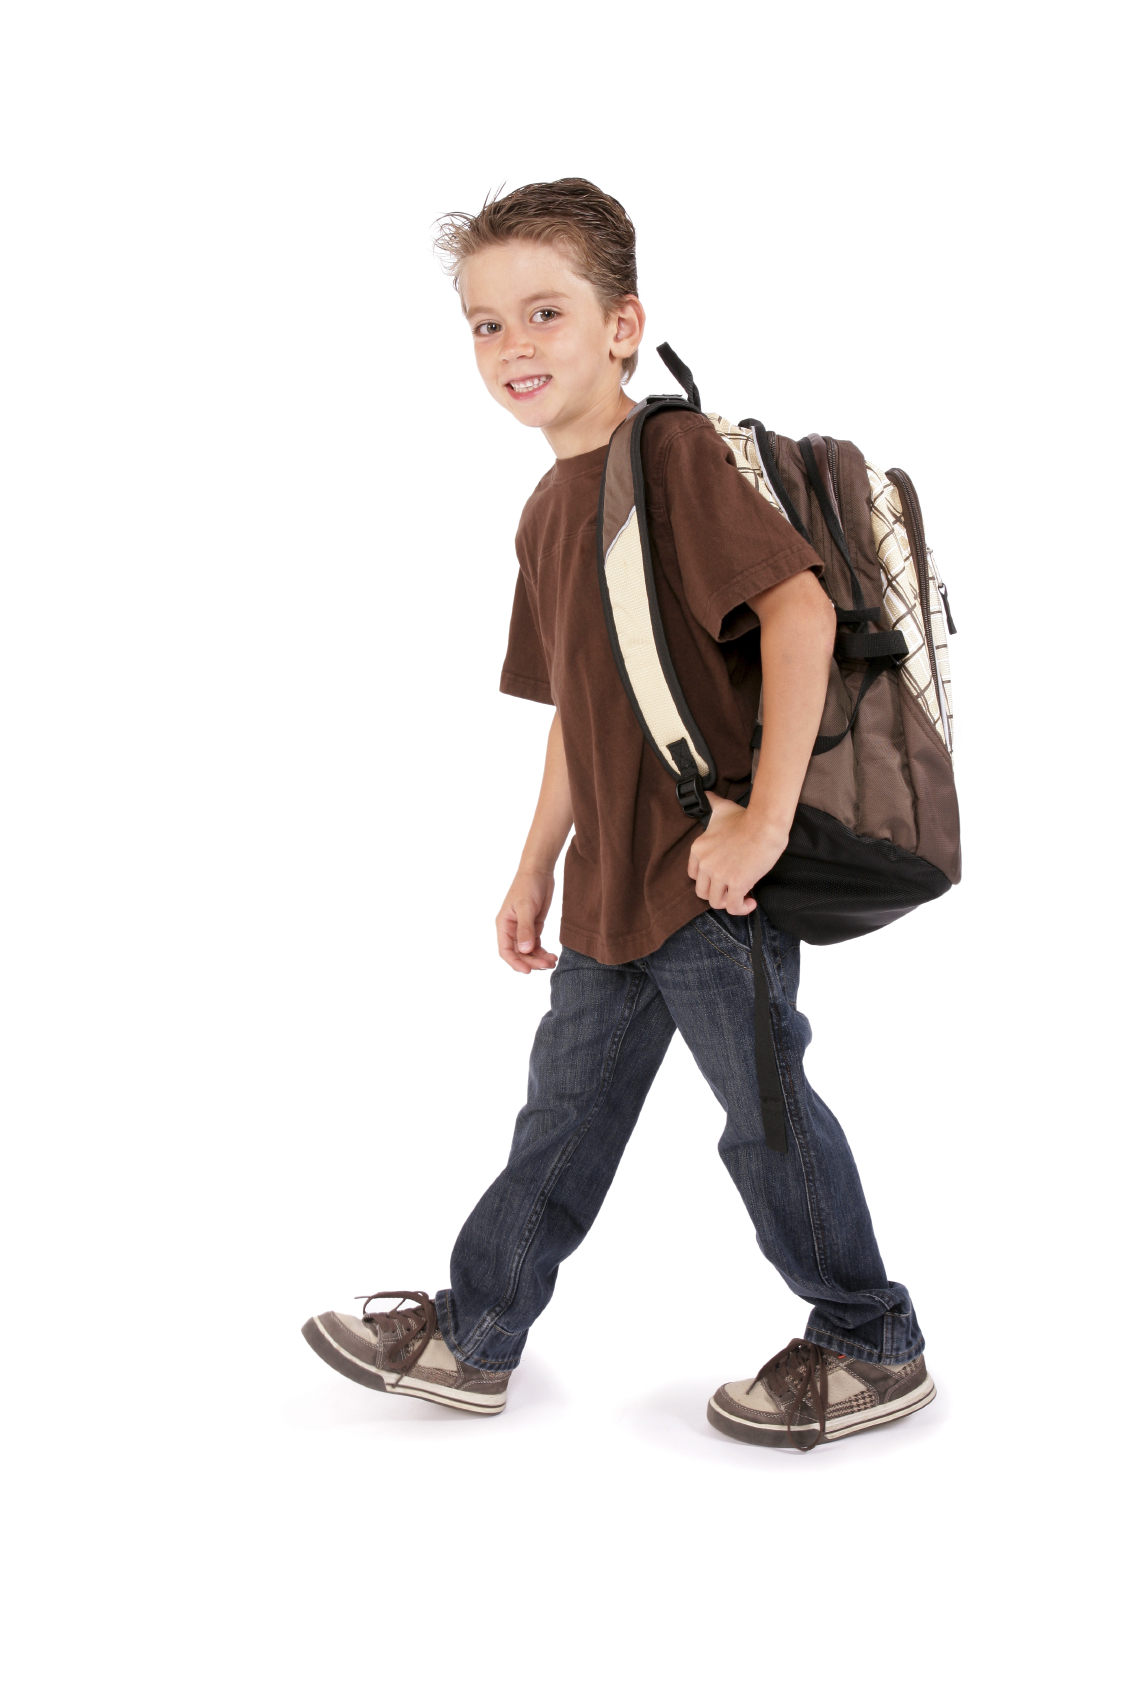 44aa5748df Top 5 Ways to Avoid Backpack-Related Back Pain